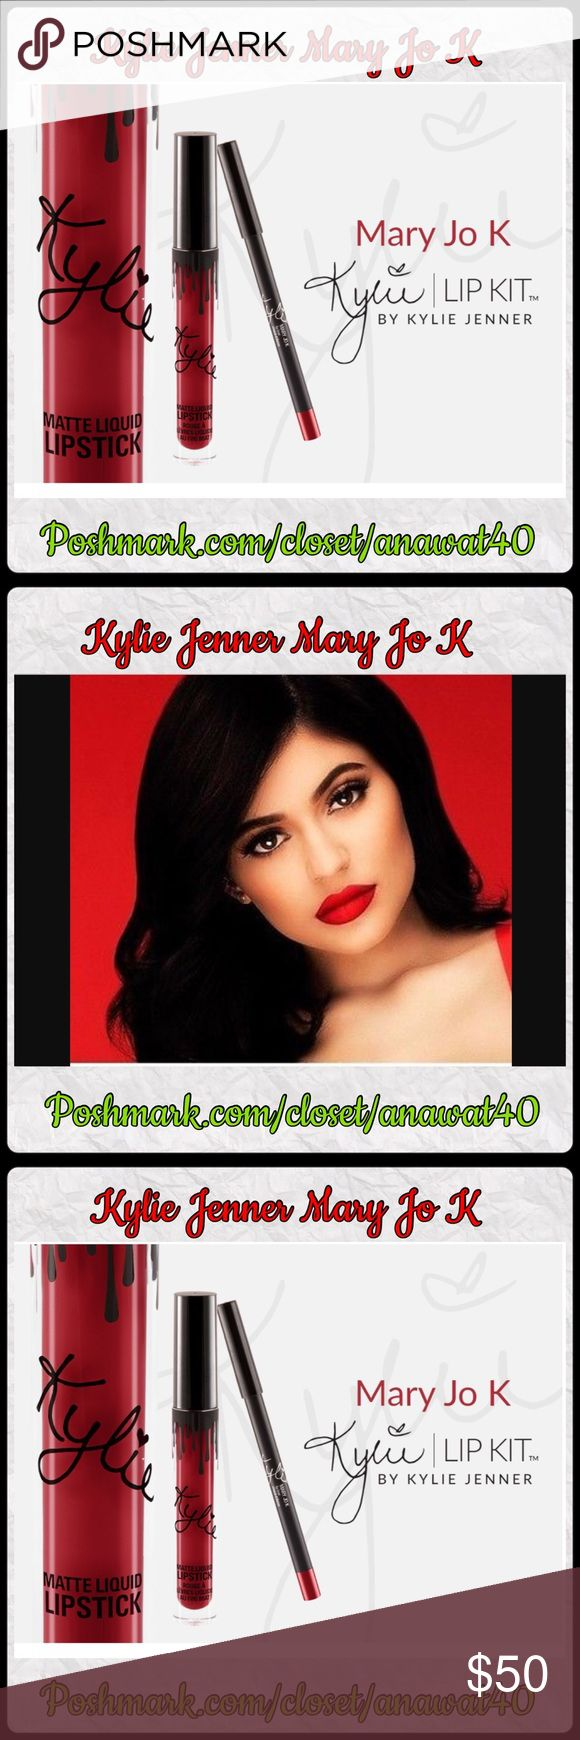 Kylie Jenner Mary Jo K Boutique (With images) Kylie